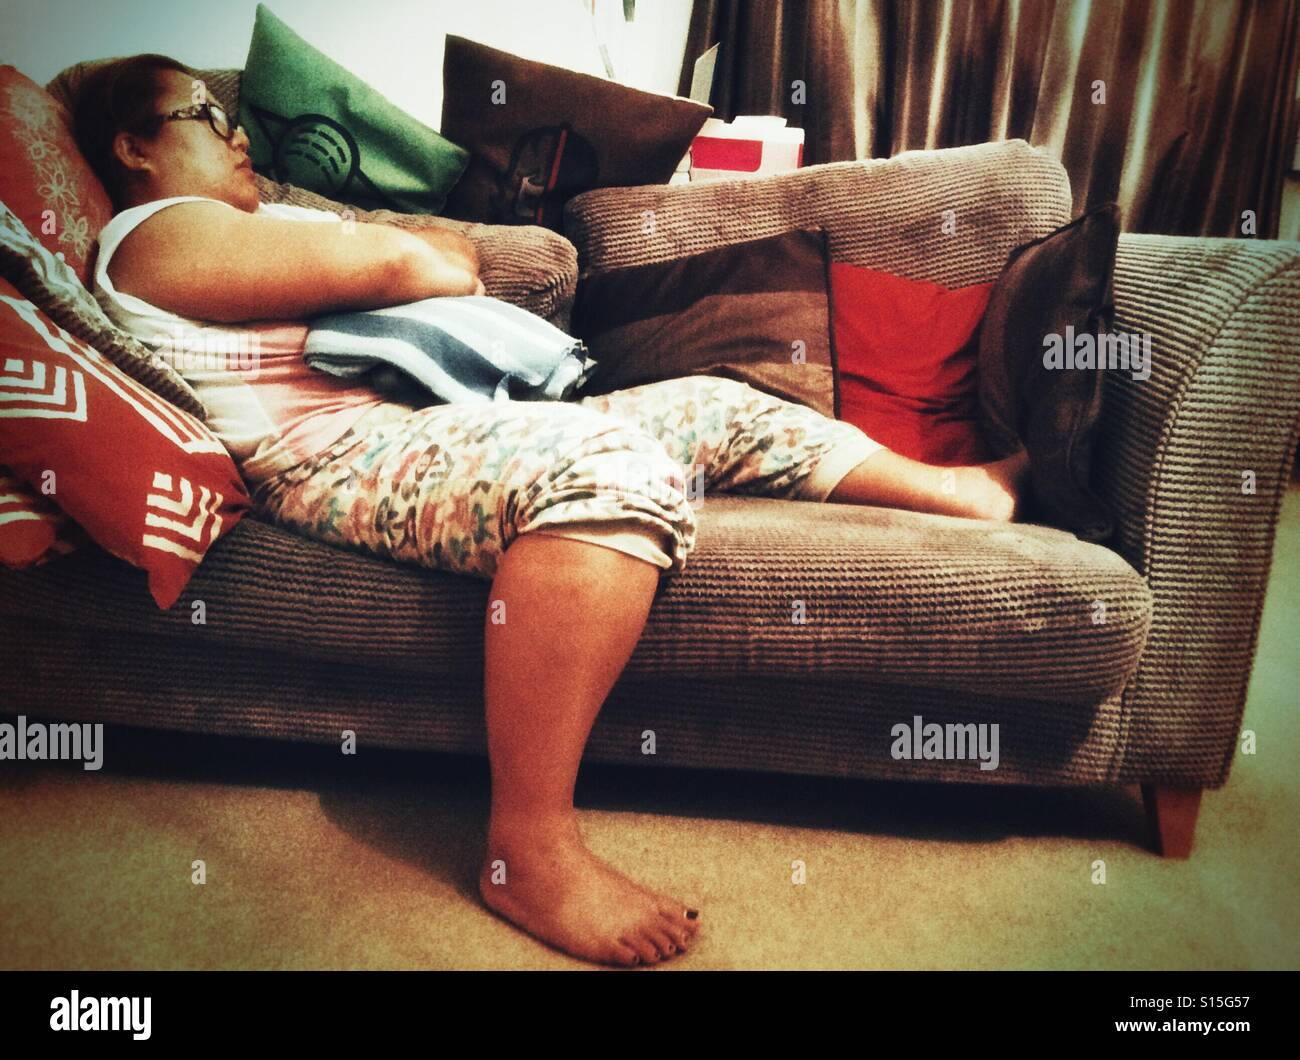 Woman asleep on a sofa. - Stock Image